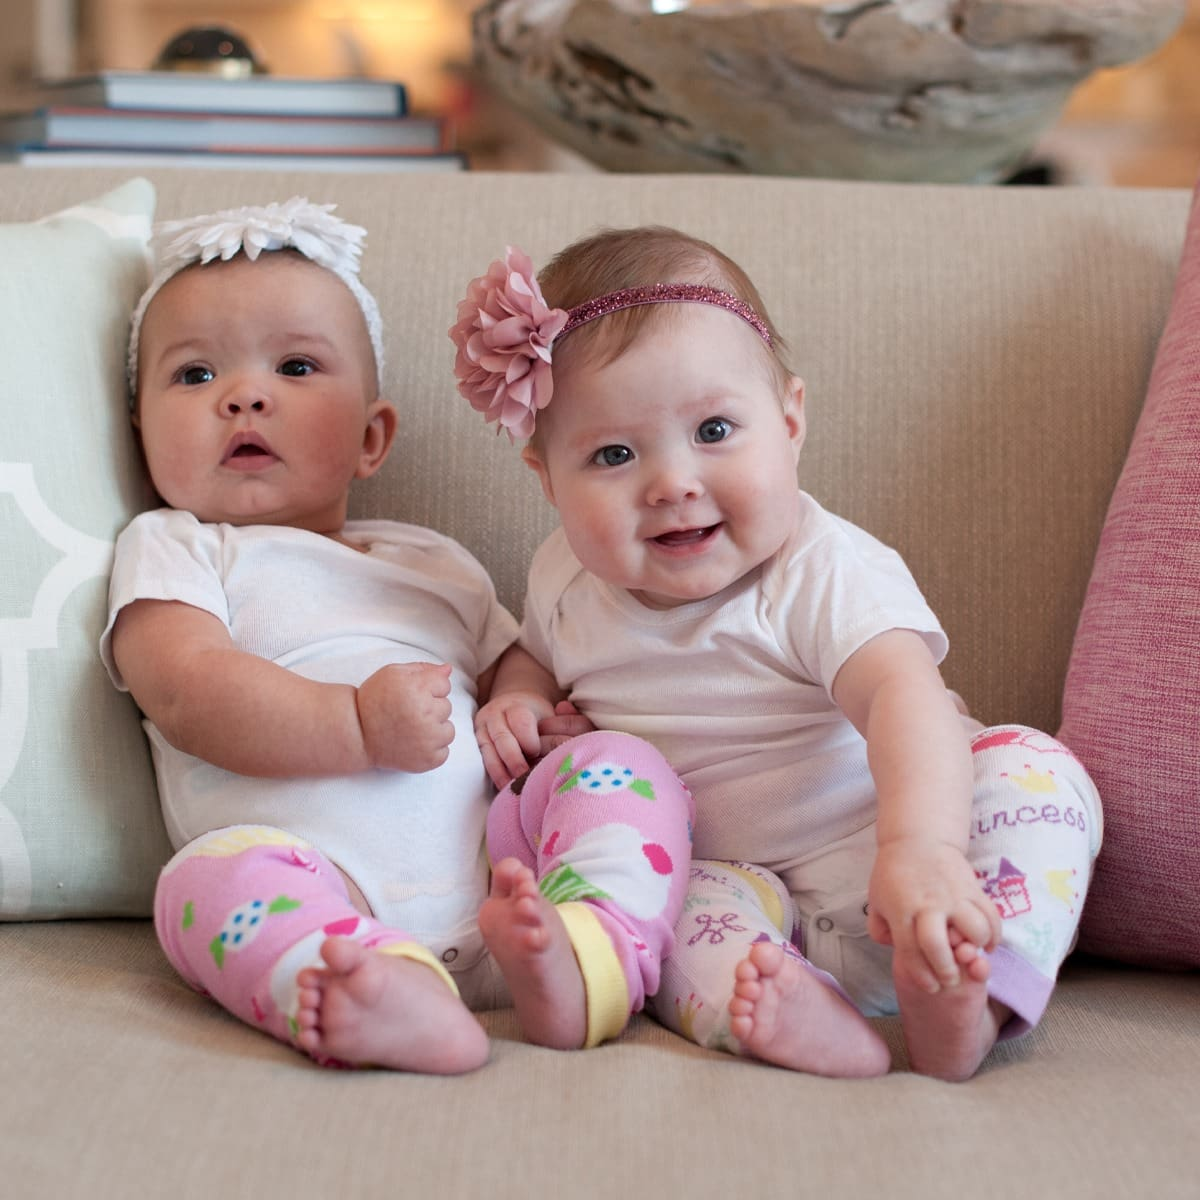 babies on couch